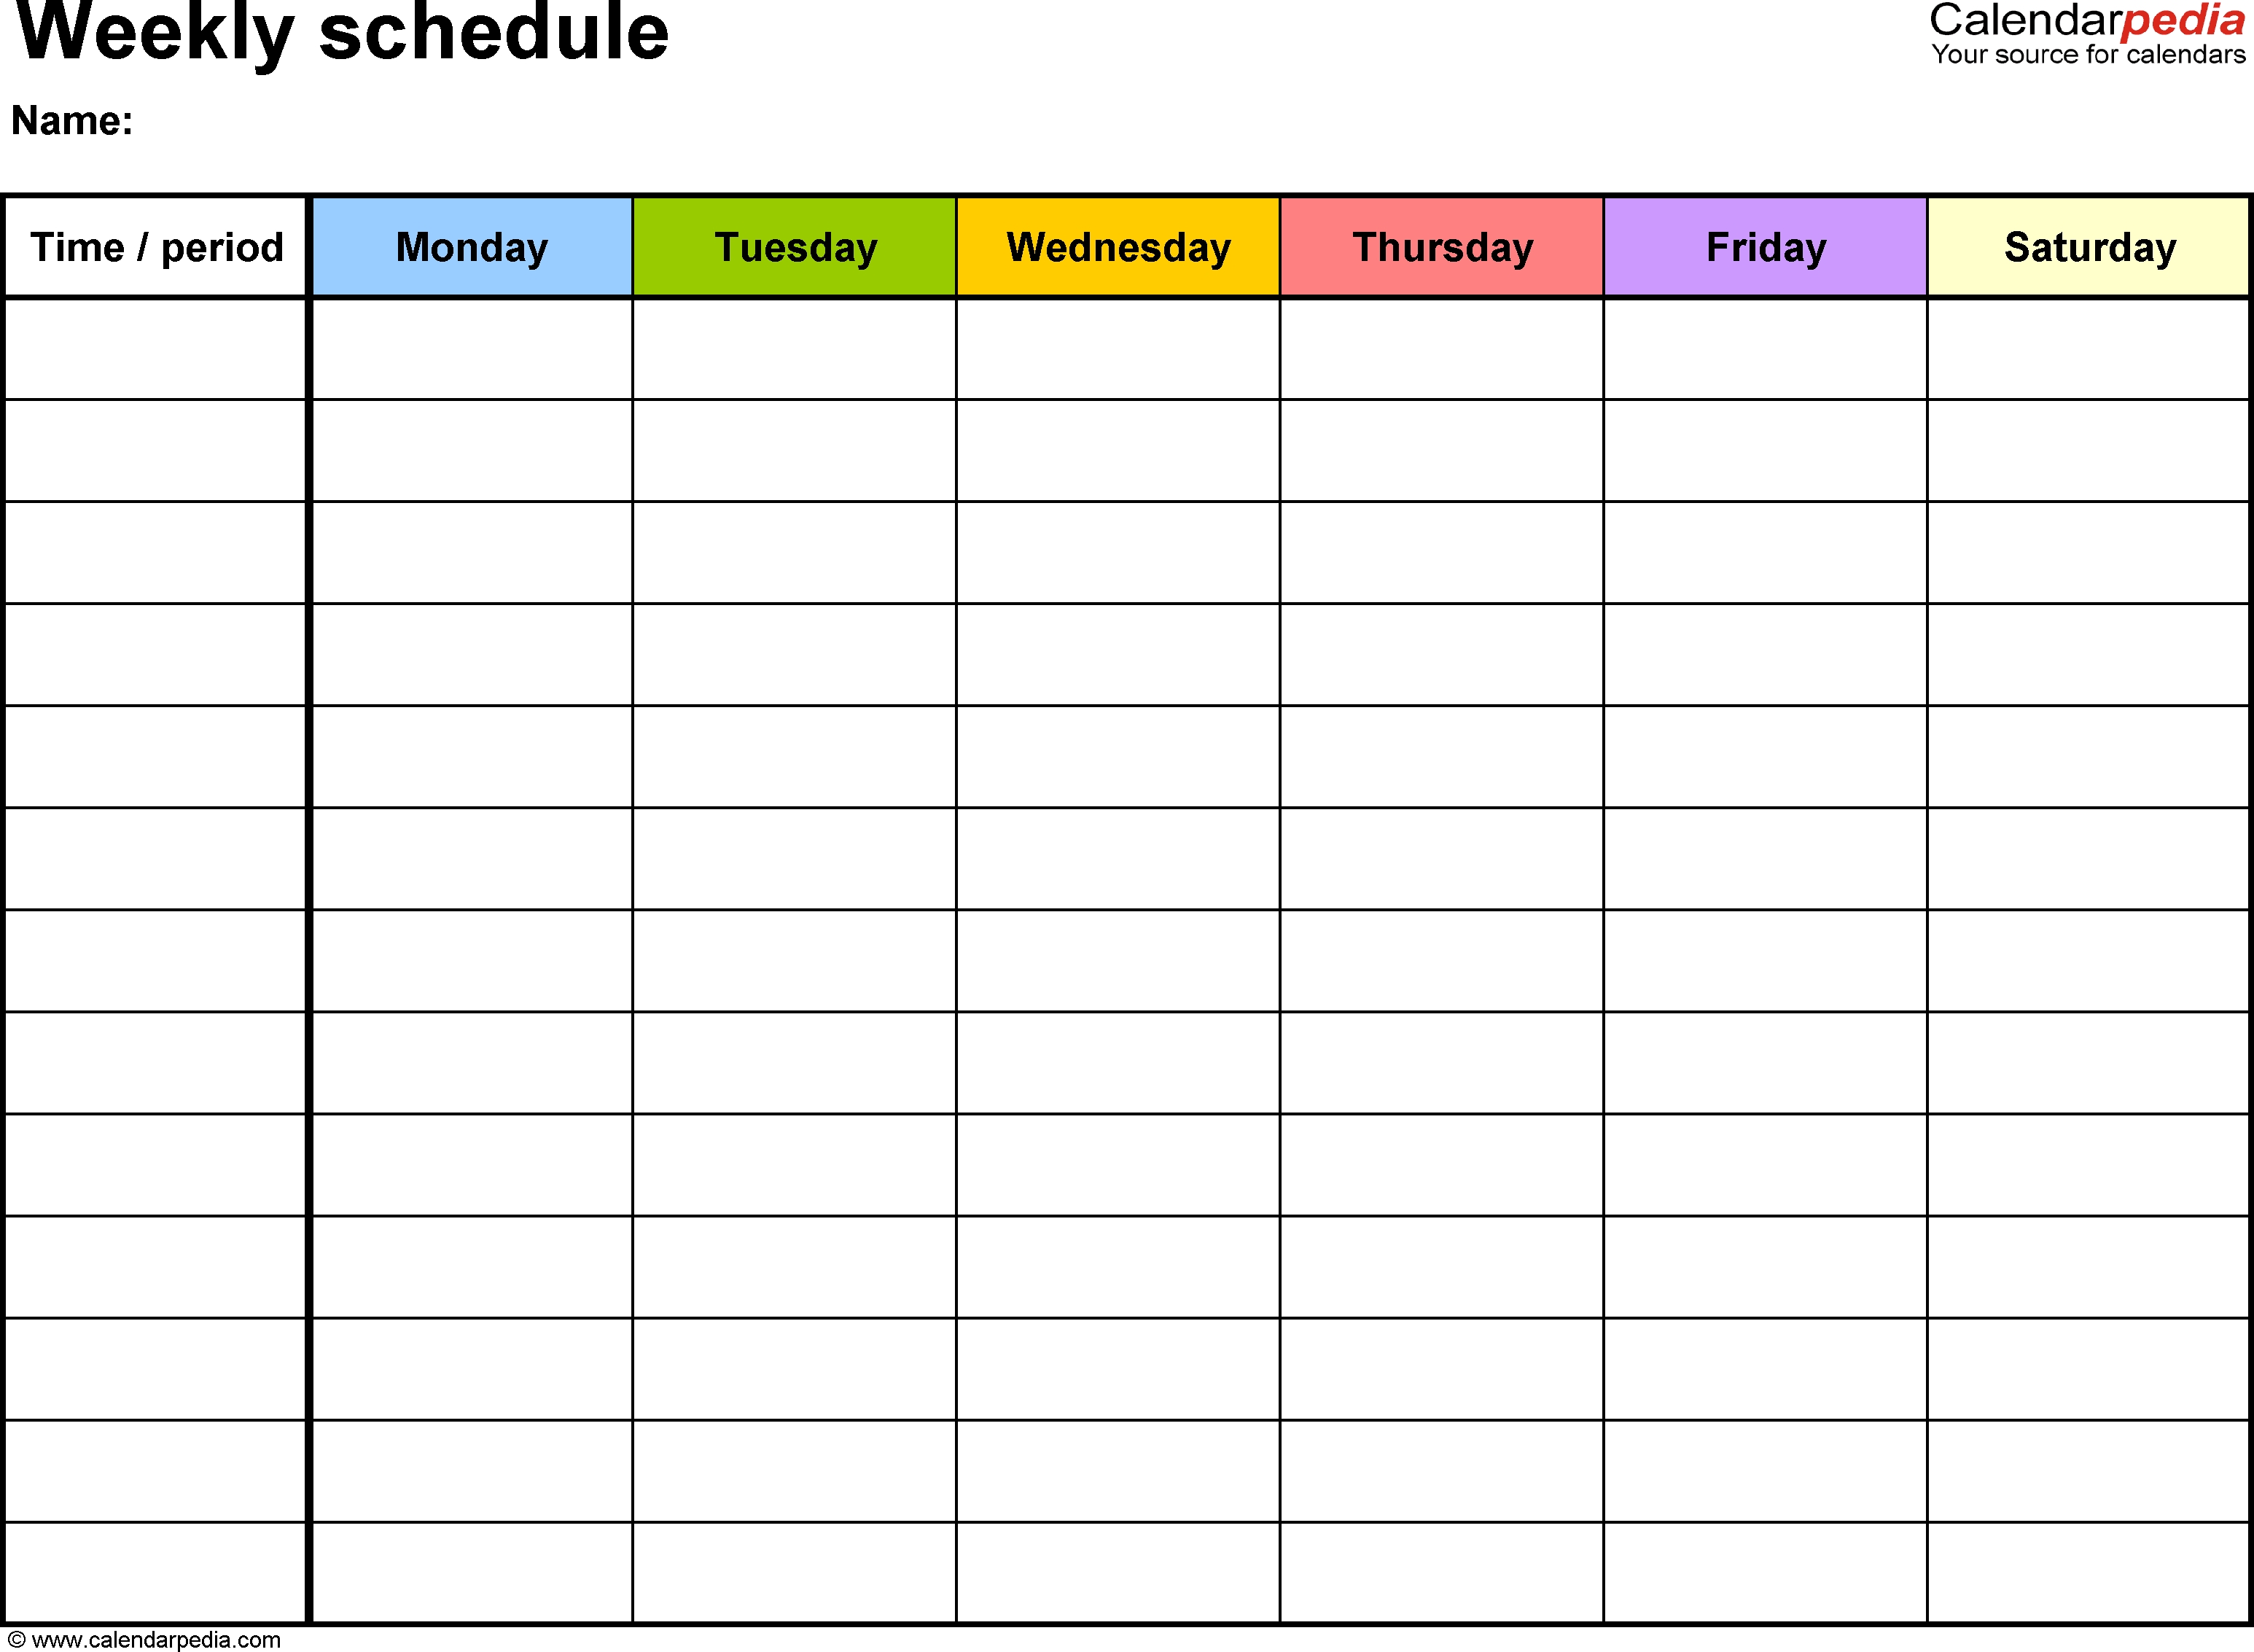 Printable Week Calendar With Times - Yeniscale.co  Day Calendar With Time Slots Printable